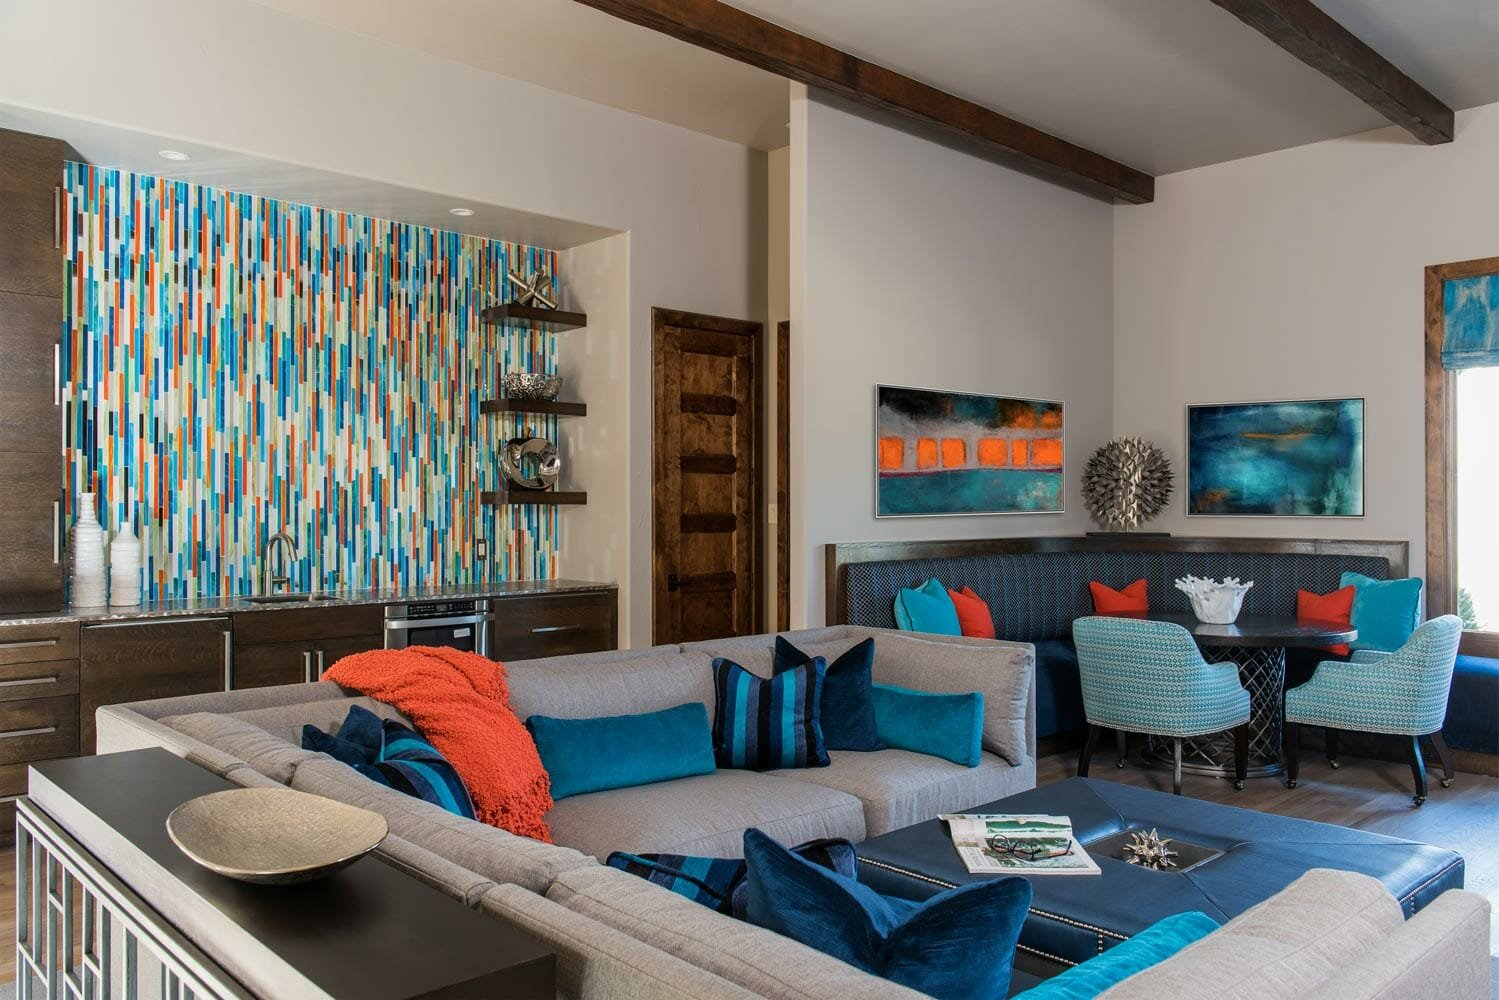 dallas interior designers - barbara gilbert - colorful contemporary living room